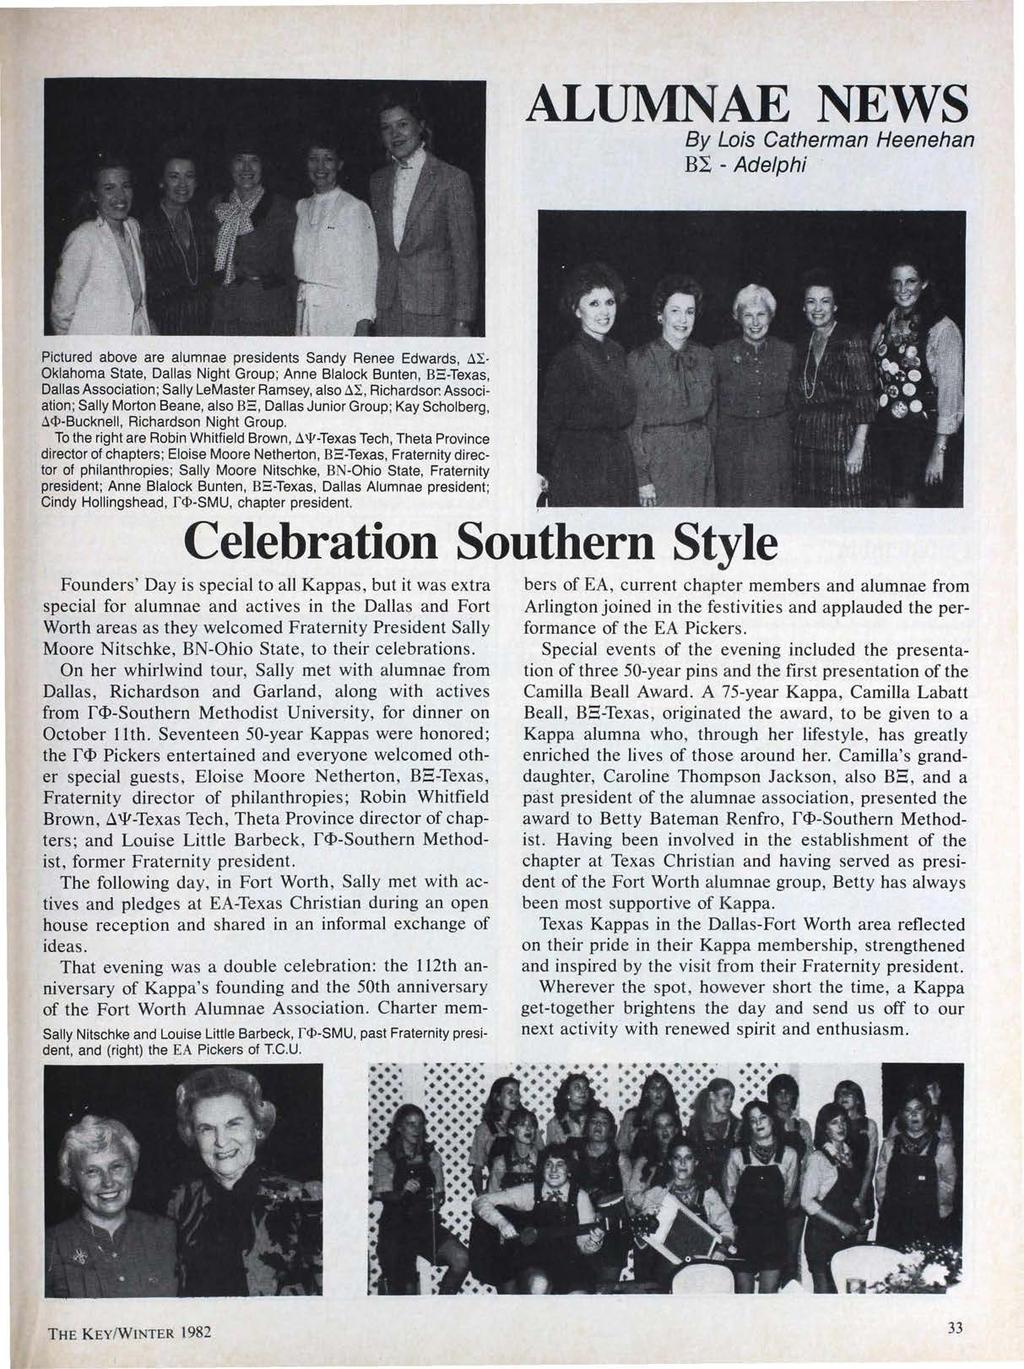 ALUMNAE NEWS By Lois Catherman Heenehan Bl- Adelphi Pictured above are alumnae presidents Sandy Renee Edwards, Lli Oklahoma State, Dallas Night Group; Anne Blalock Bunten, BS-Texas, Dallas